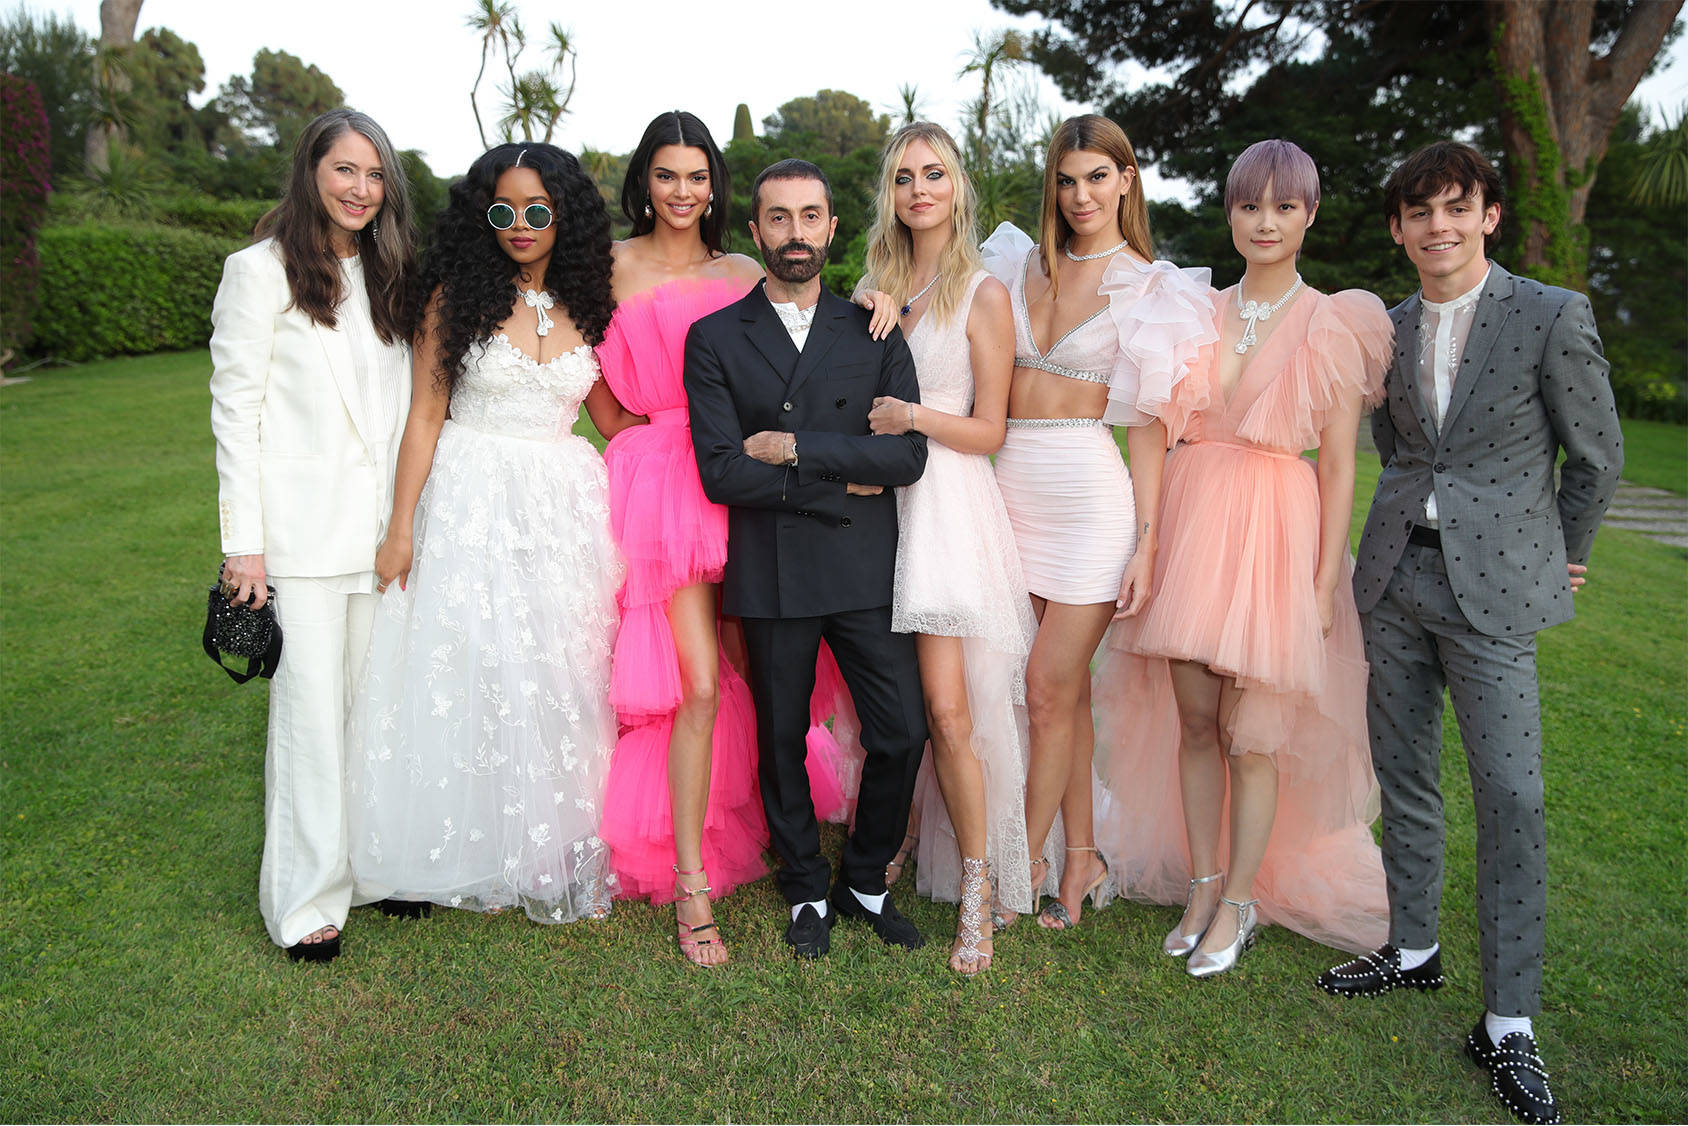 Giambattista Valli at the amfAR gala together with his muses: H.E.R, Kendall Jenner, Chiara Ferragni, Bianca Brandolini, Chris Lee and Ross Lynch. All wearing full looks from the limited edition collection, available online and in stores 25 May.